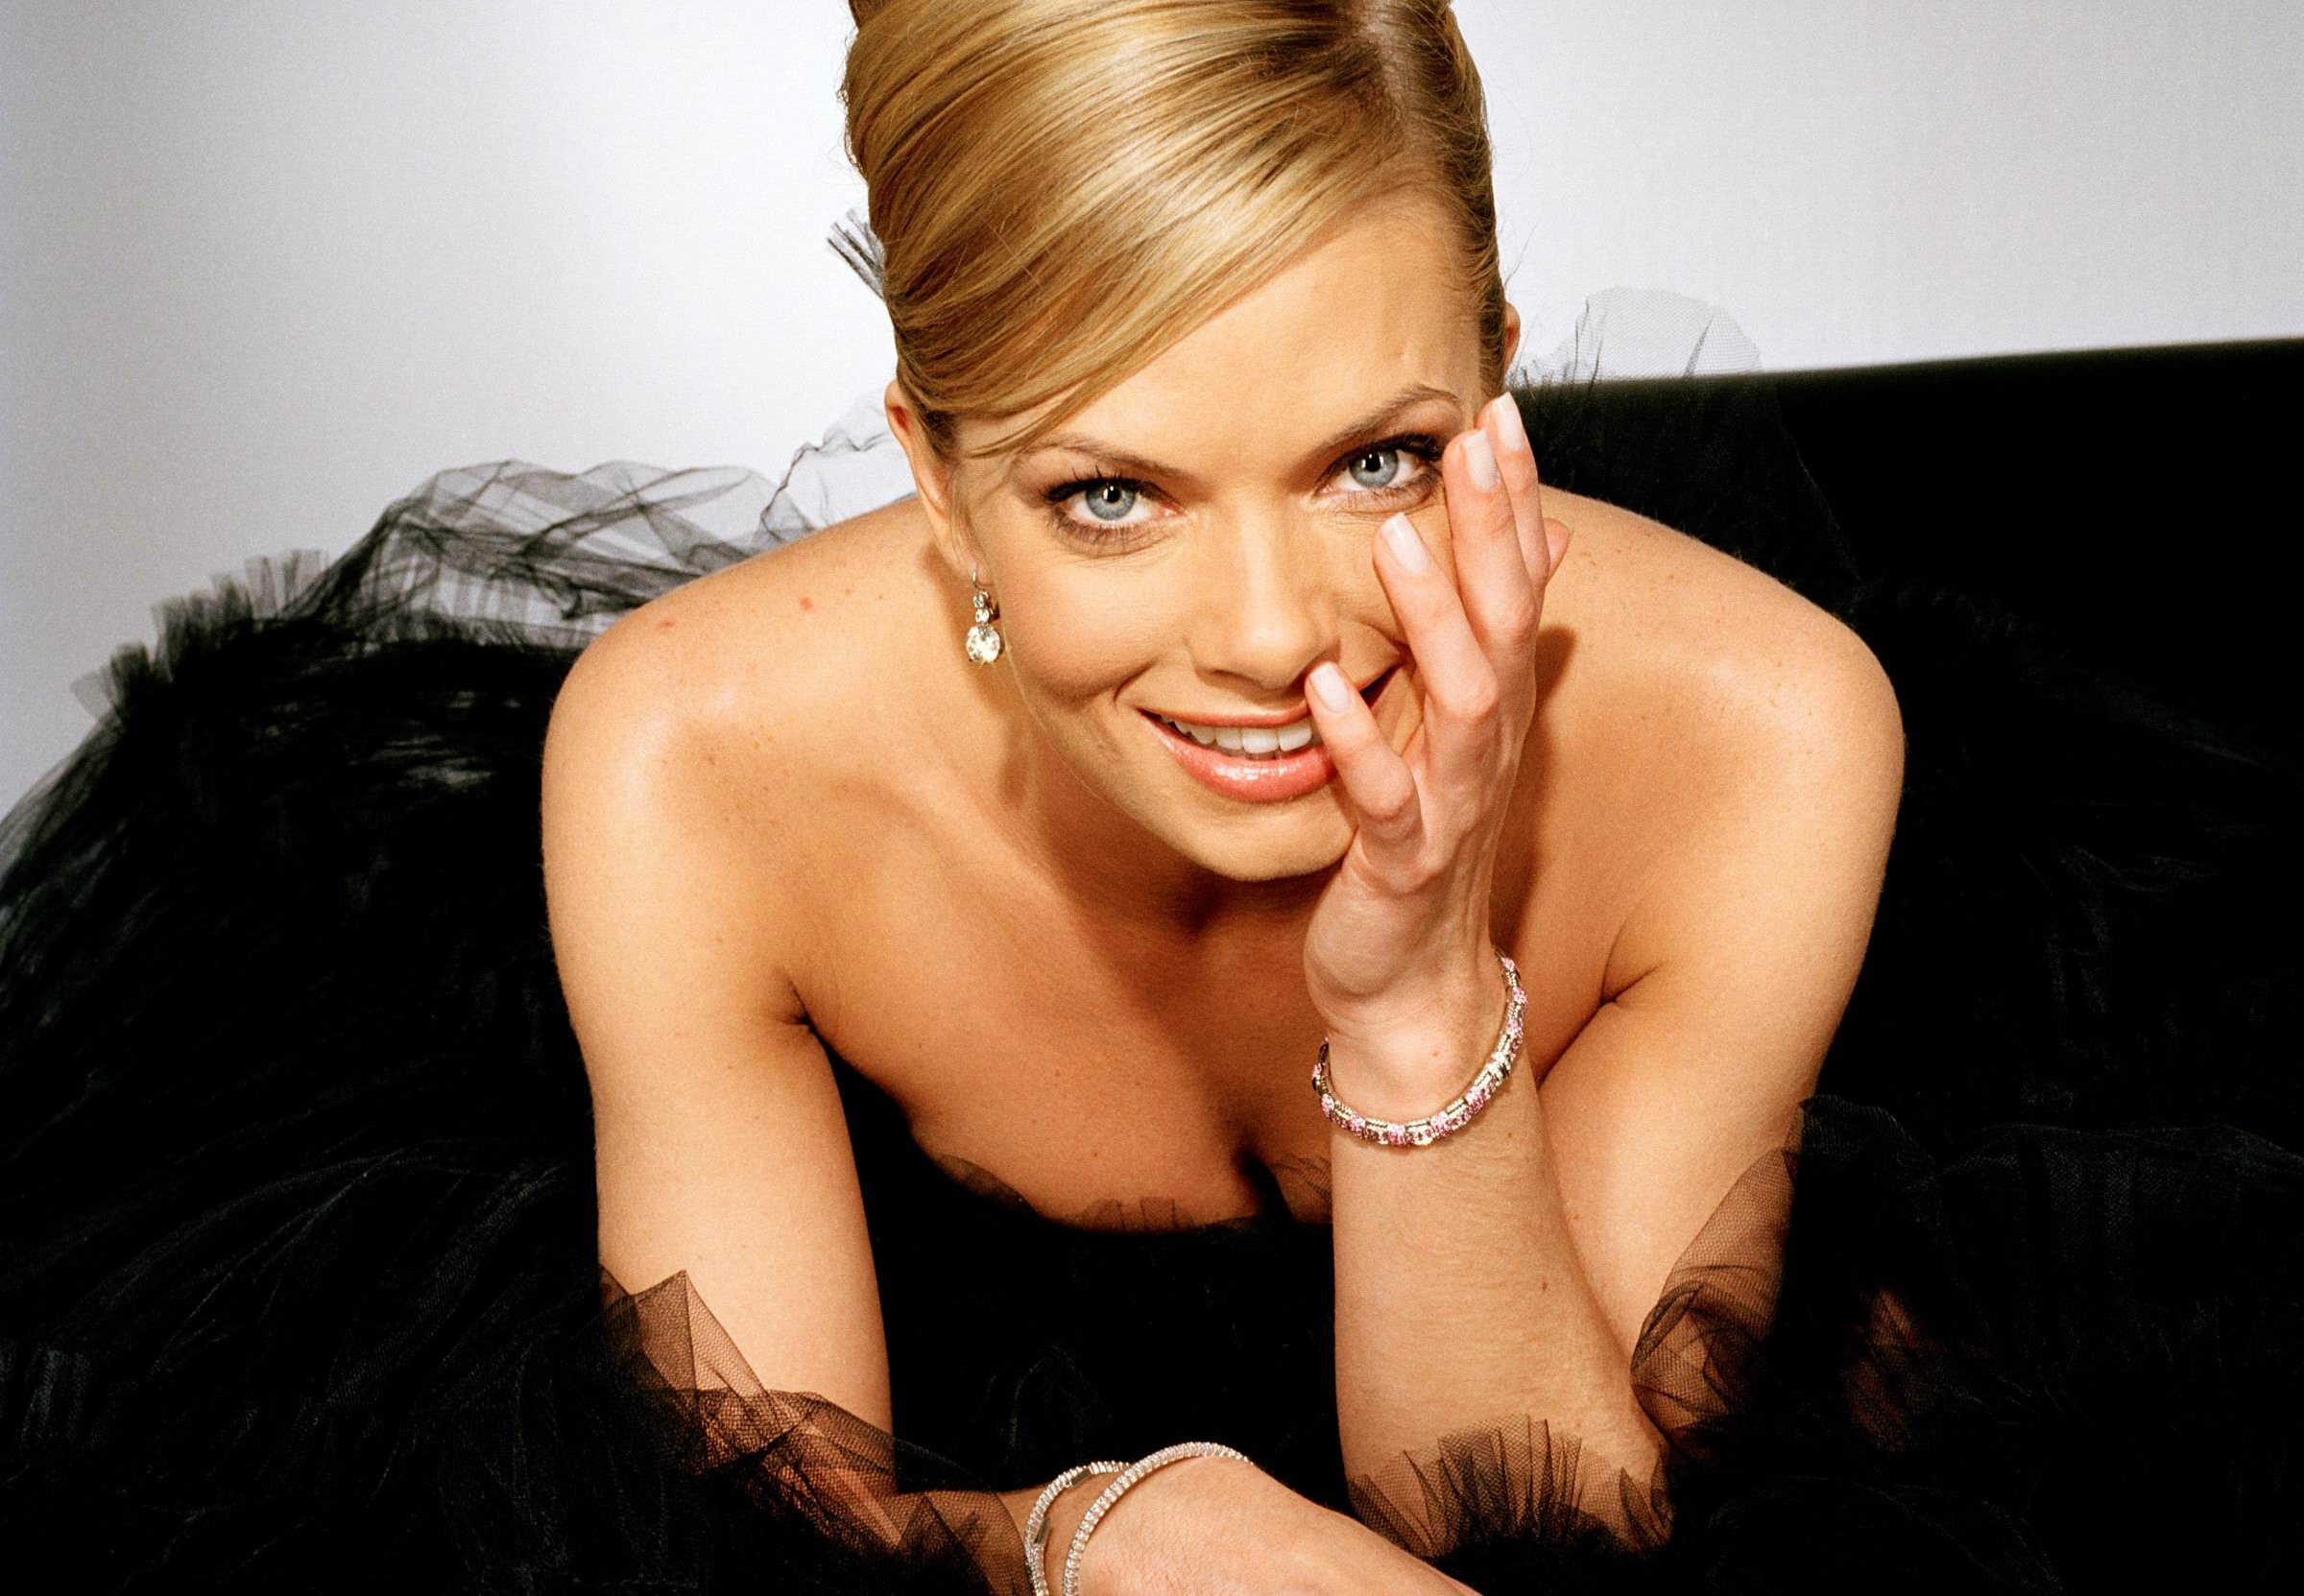 2400x1663 - Jaime Pressly Wallpapers 29